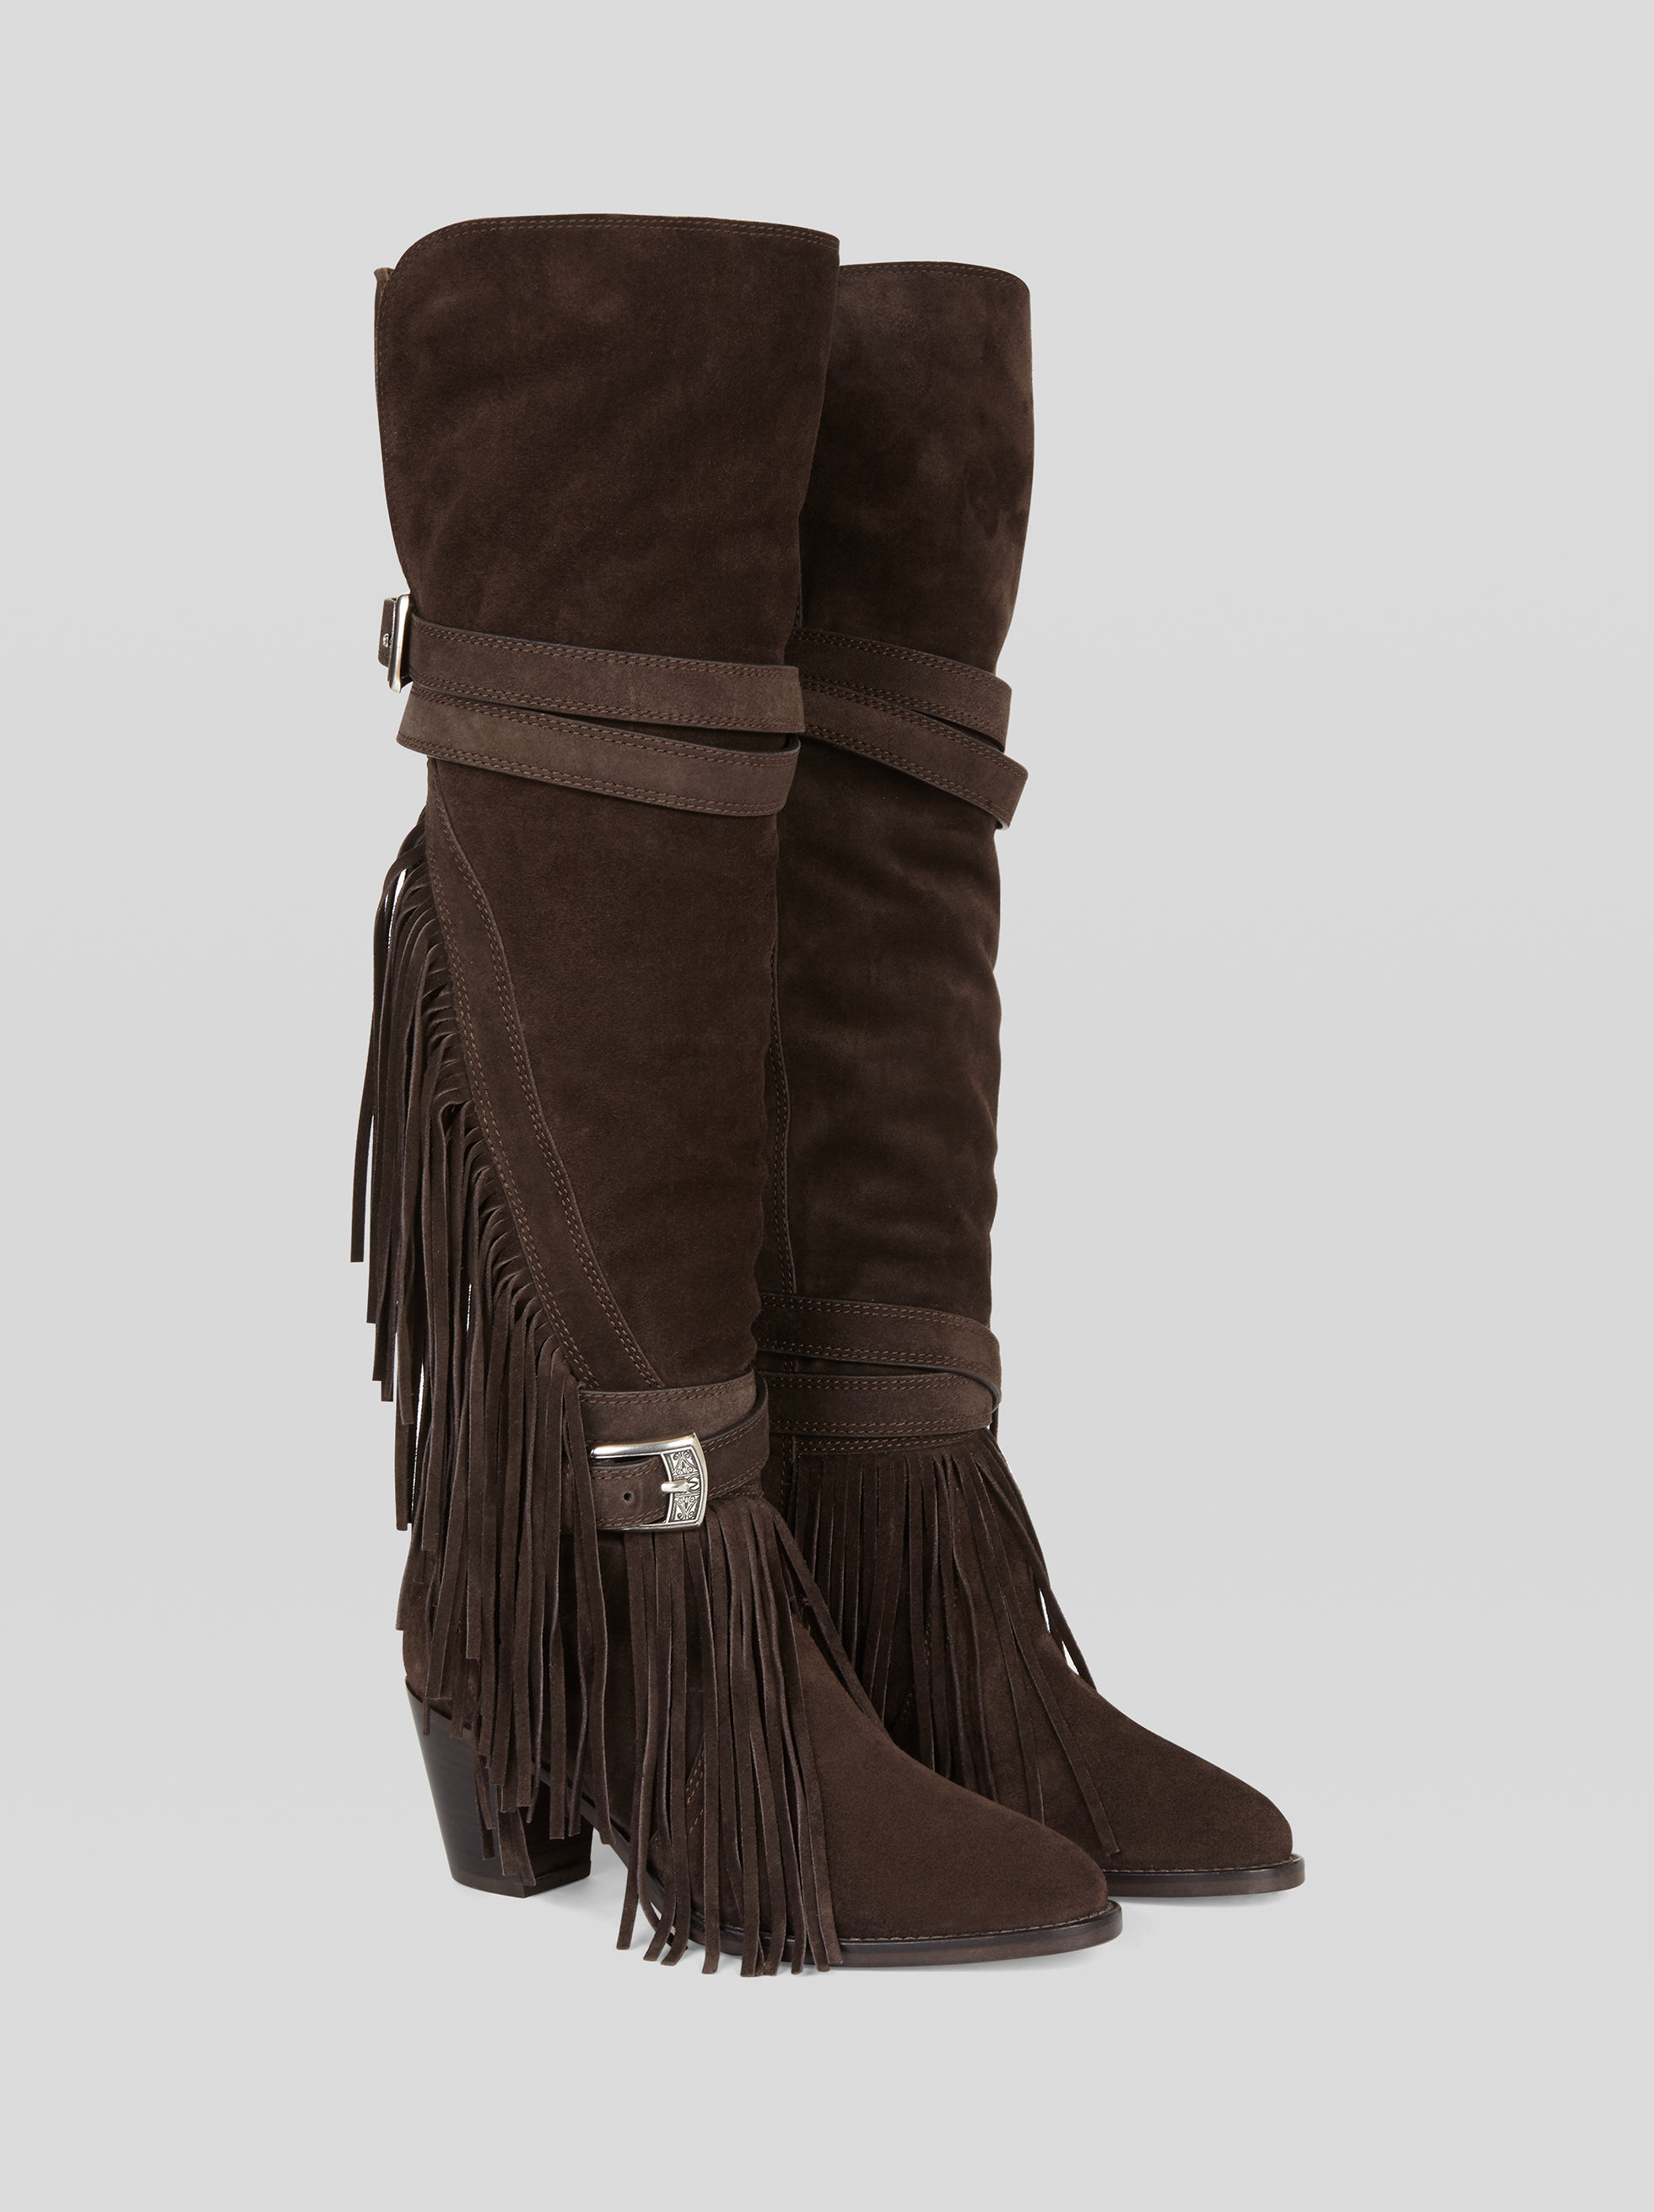 LEATHER AND SHEEPSKIN BOOTS